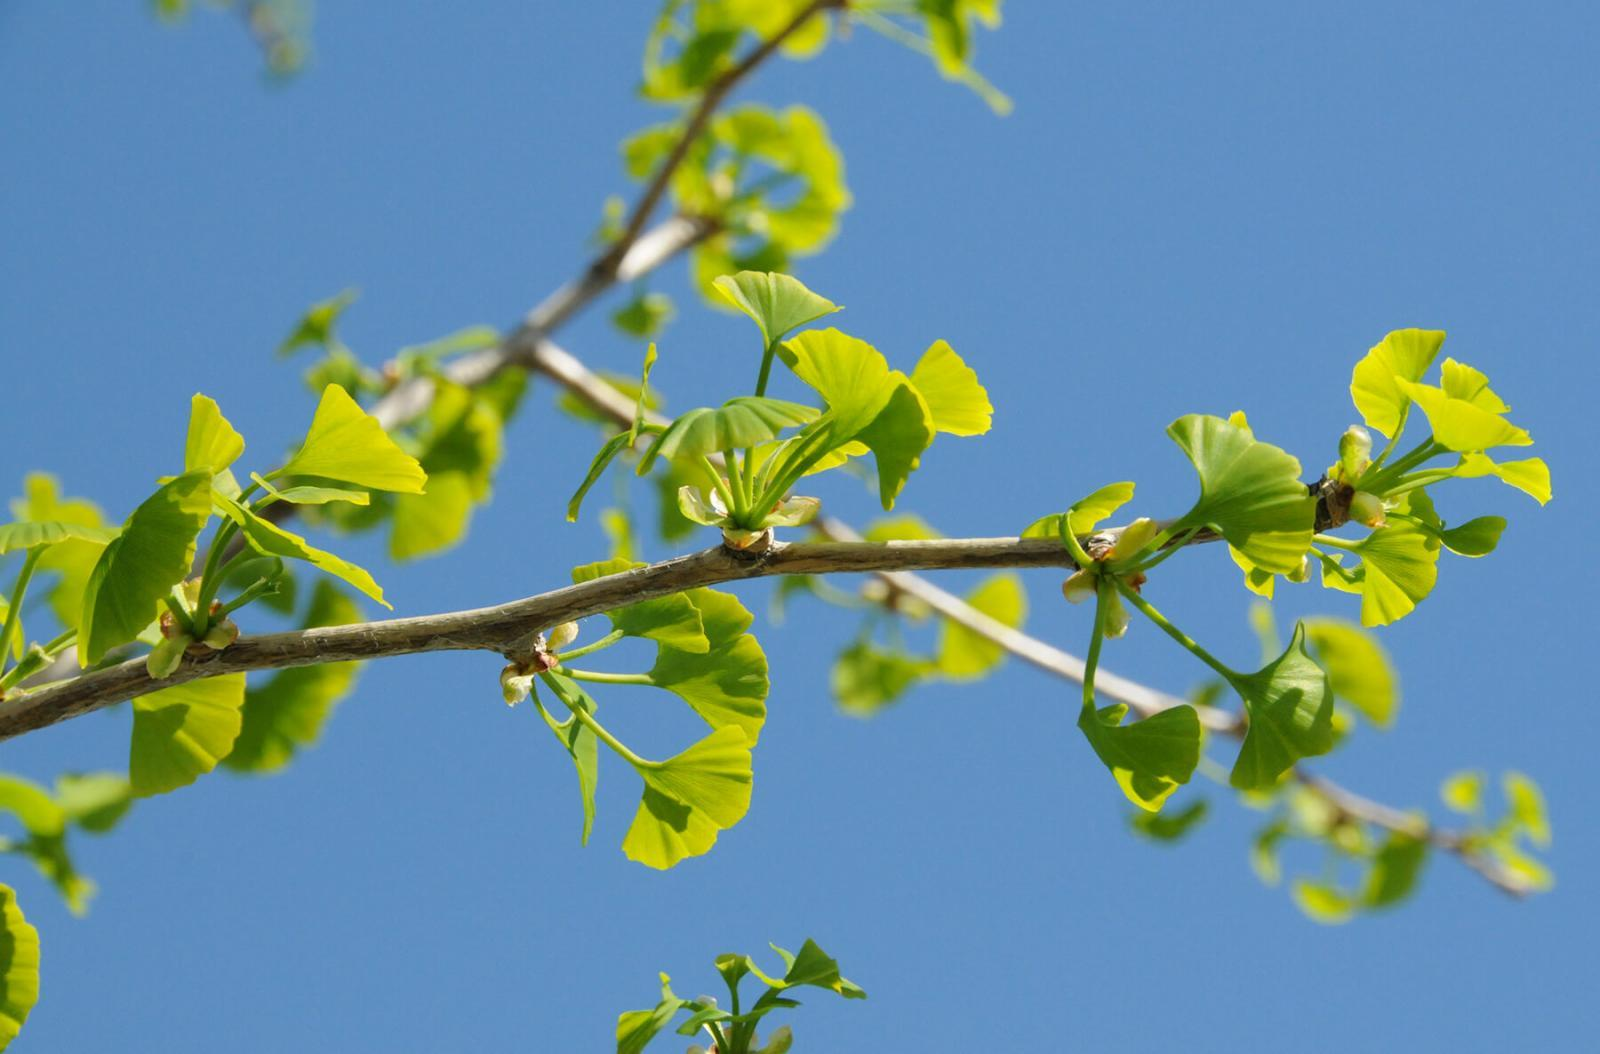 Ginkgo is truly a tree worth planting for future generations